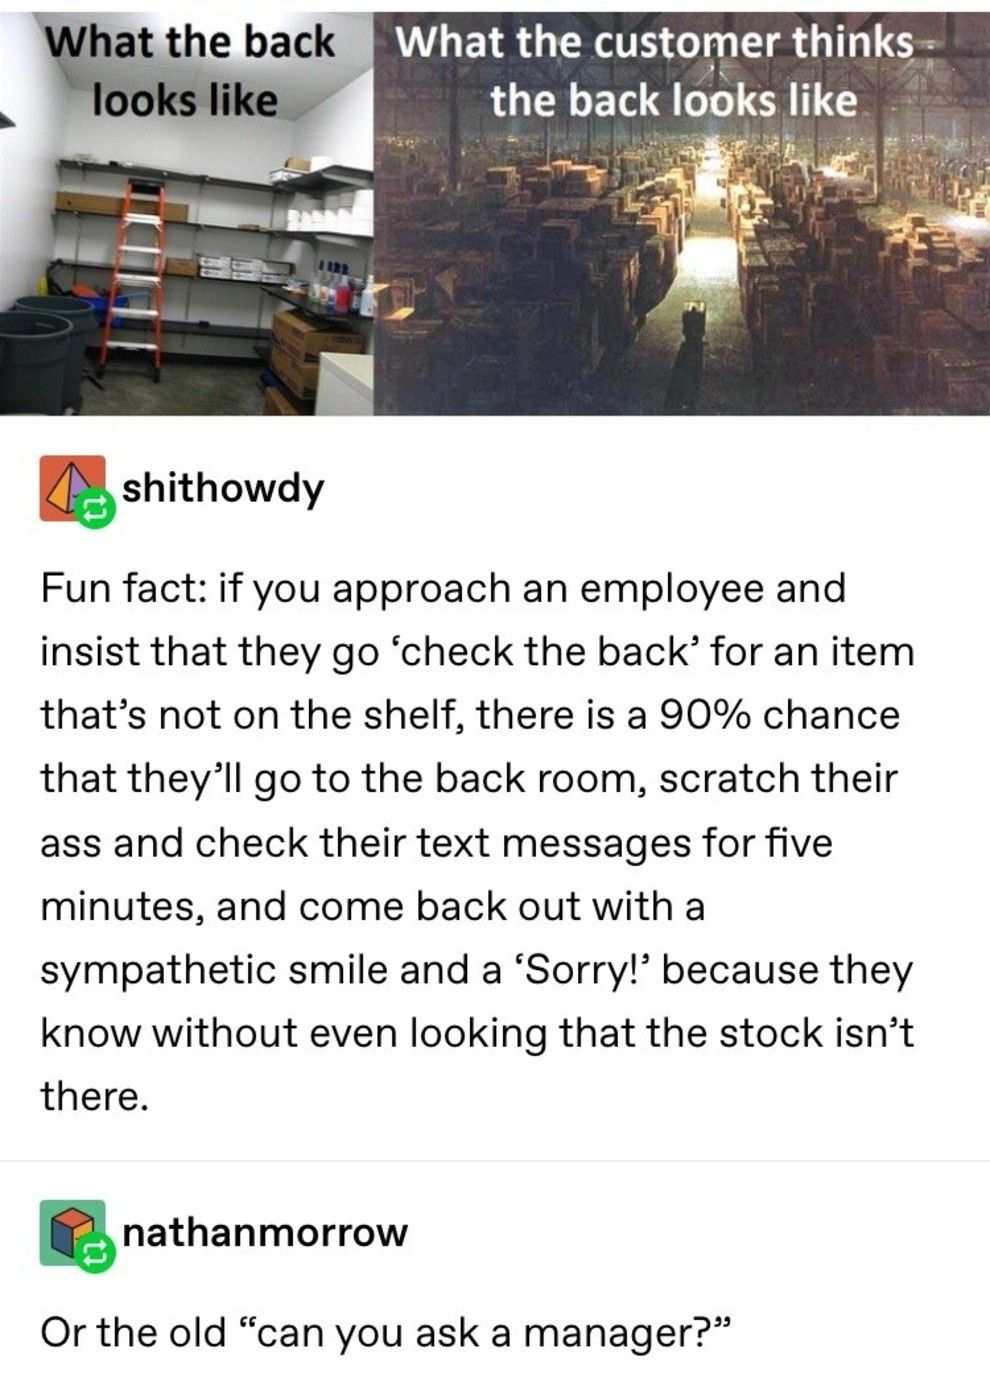 19 Tumblr Posts That All Retail Employees Can, Unfortunately, Relate To